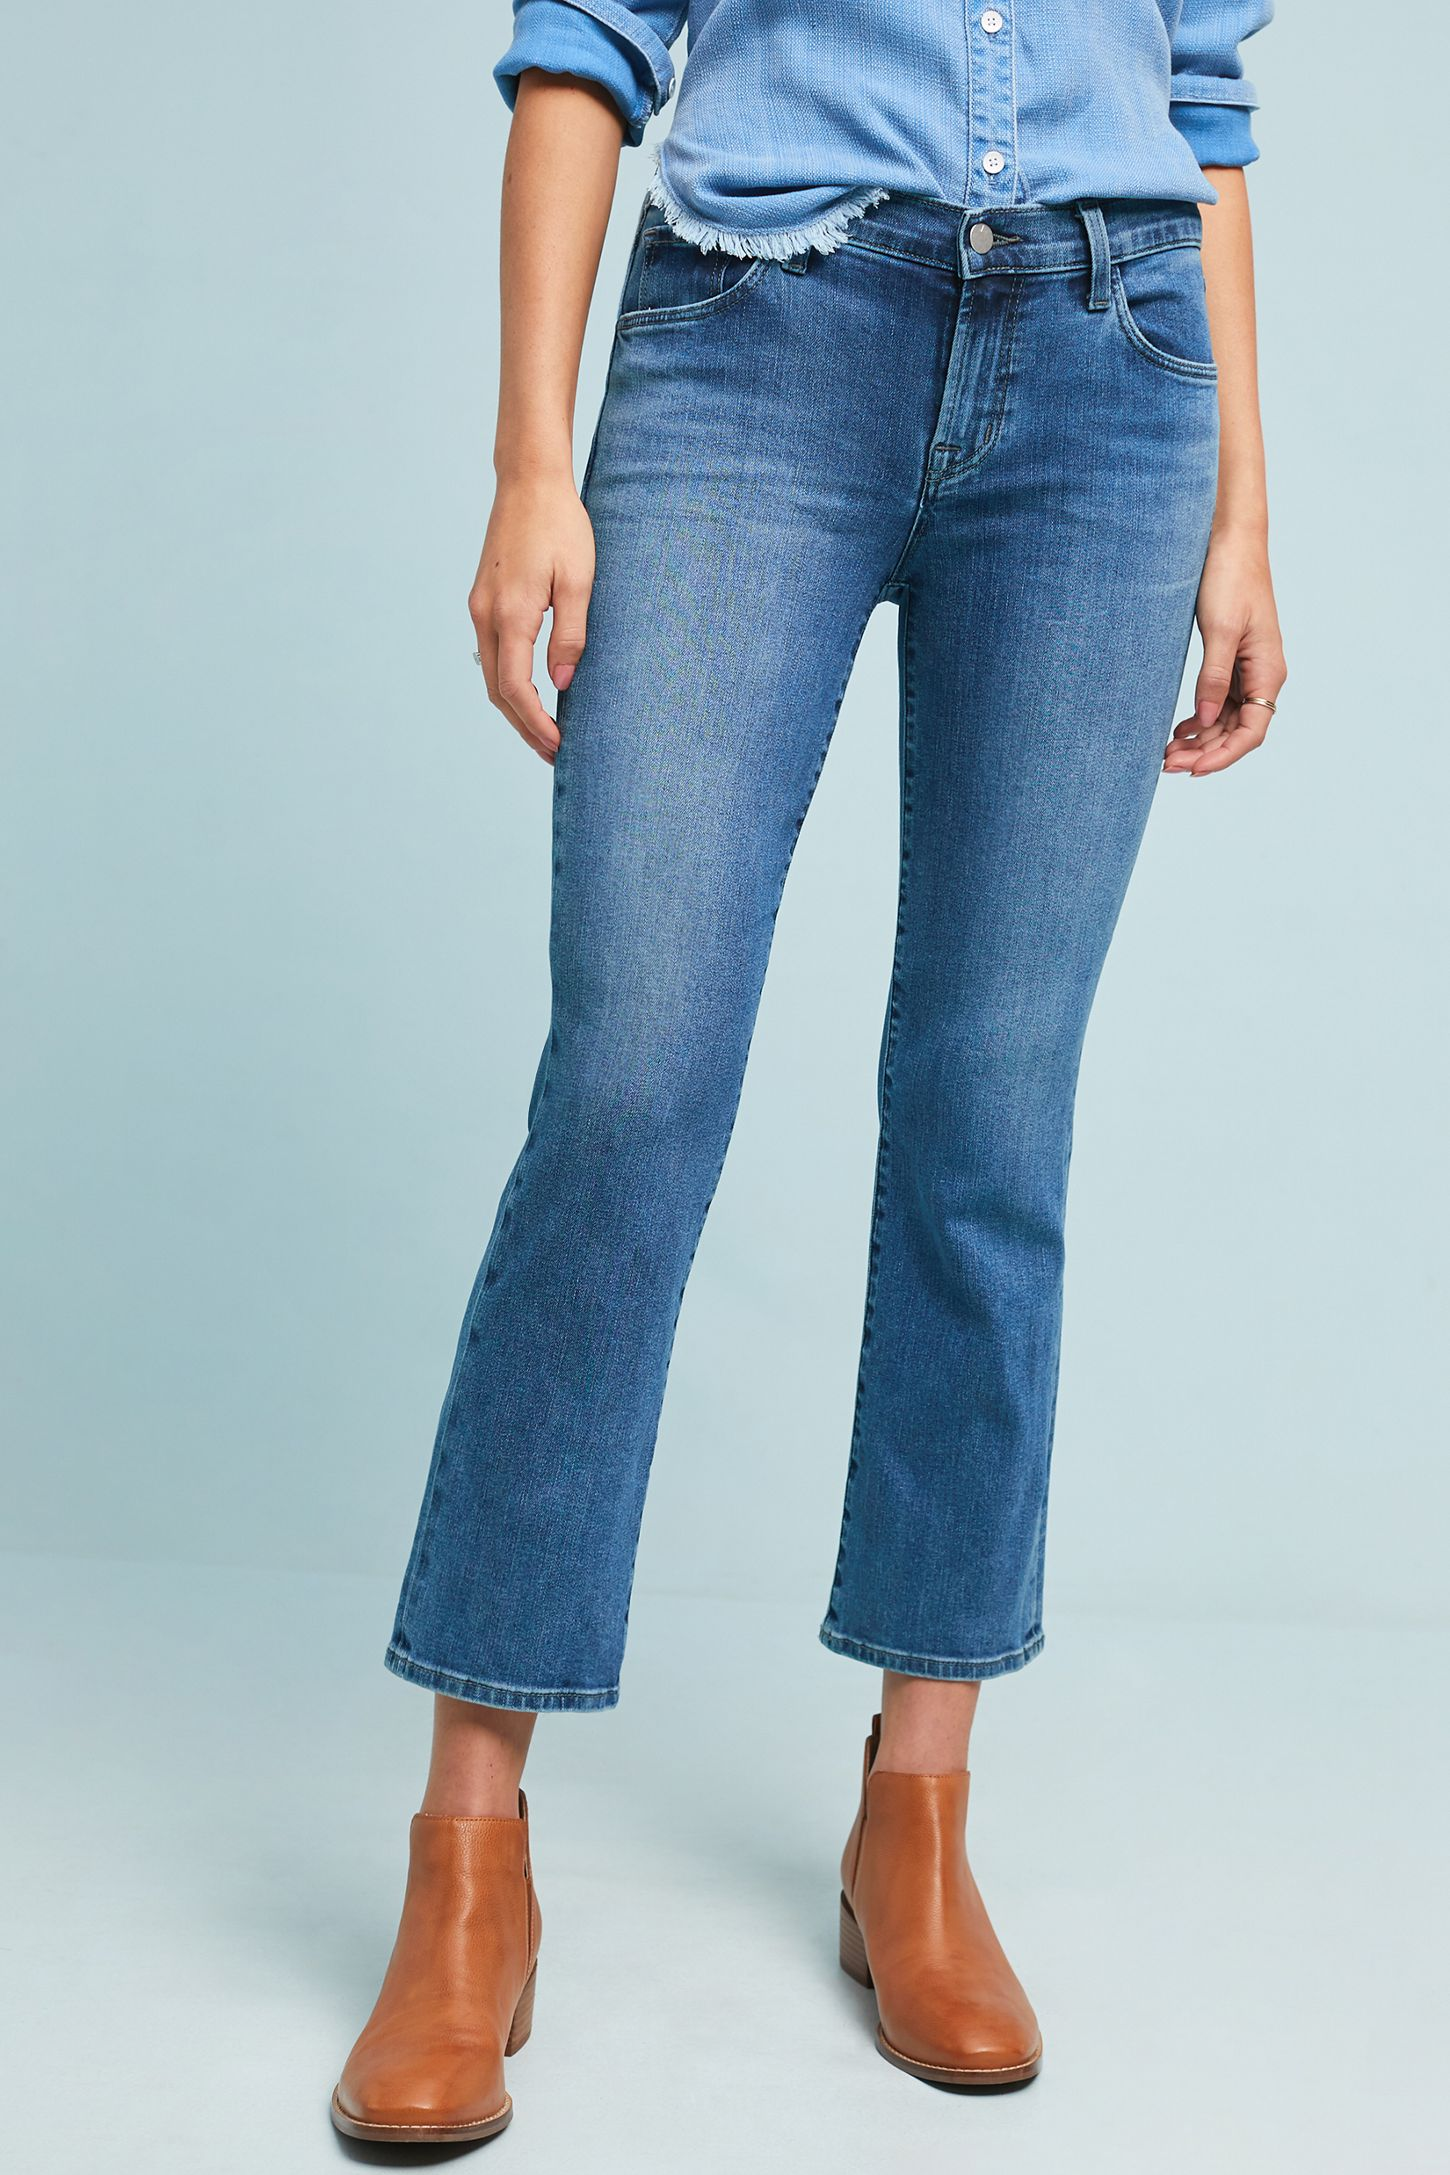 91dec16c58a3b Slide View  4  J Brand Selena Mid-Rise Cropped Bootcut Jeans